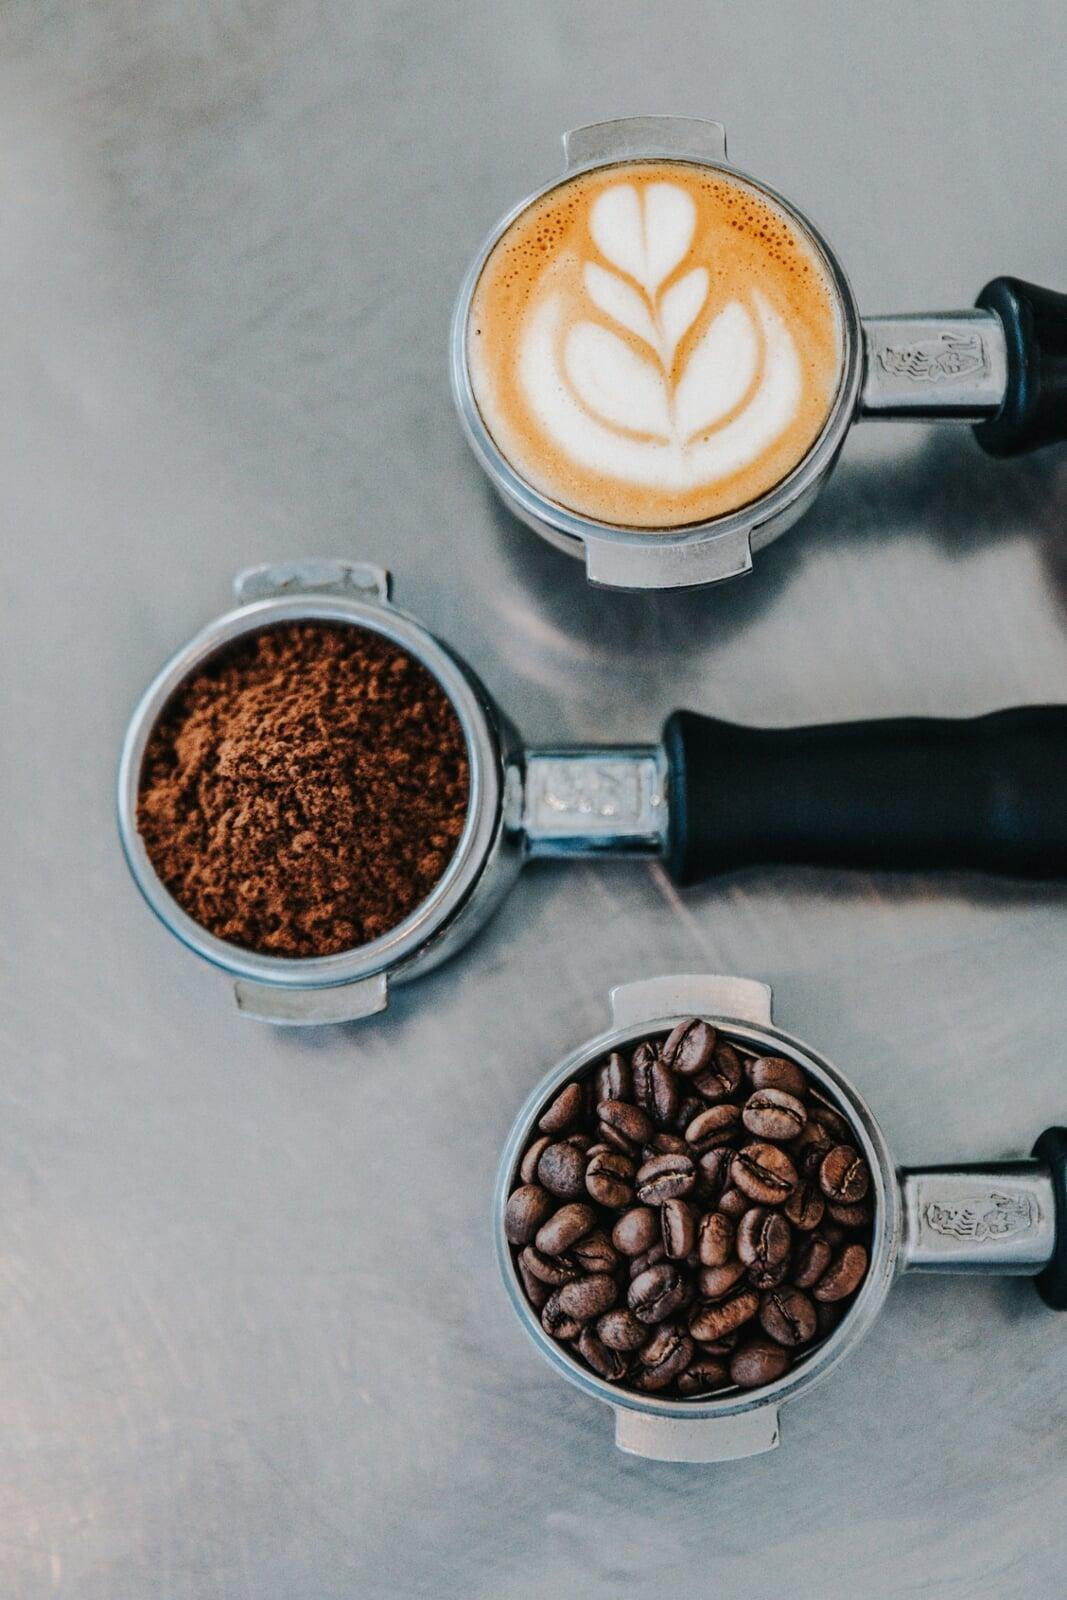 Where to go for your coffee to go in The Hague?